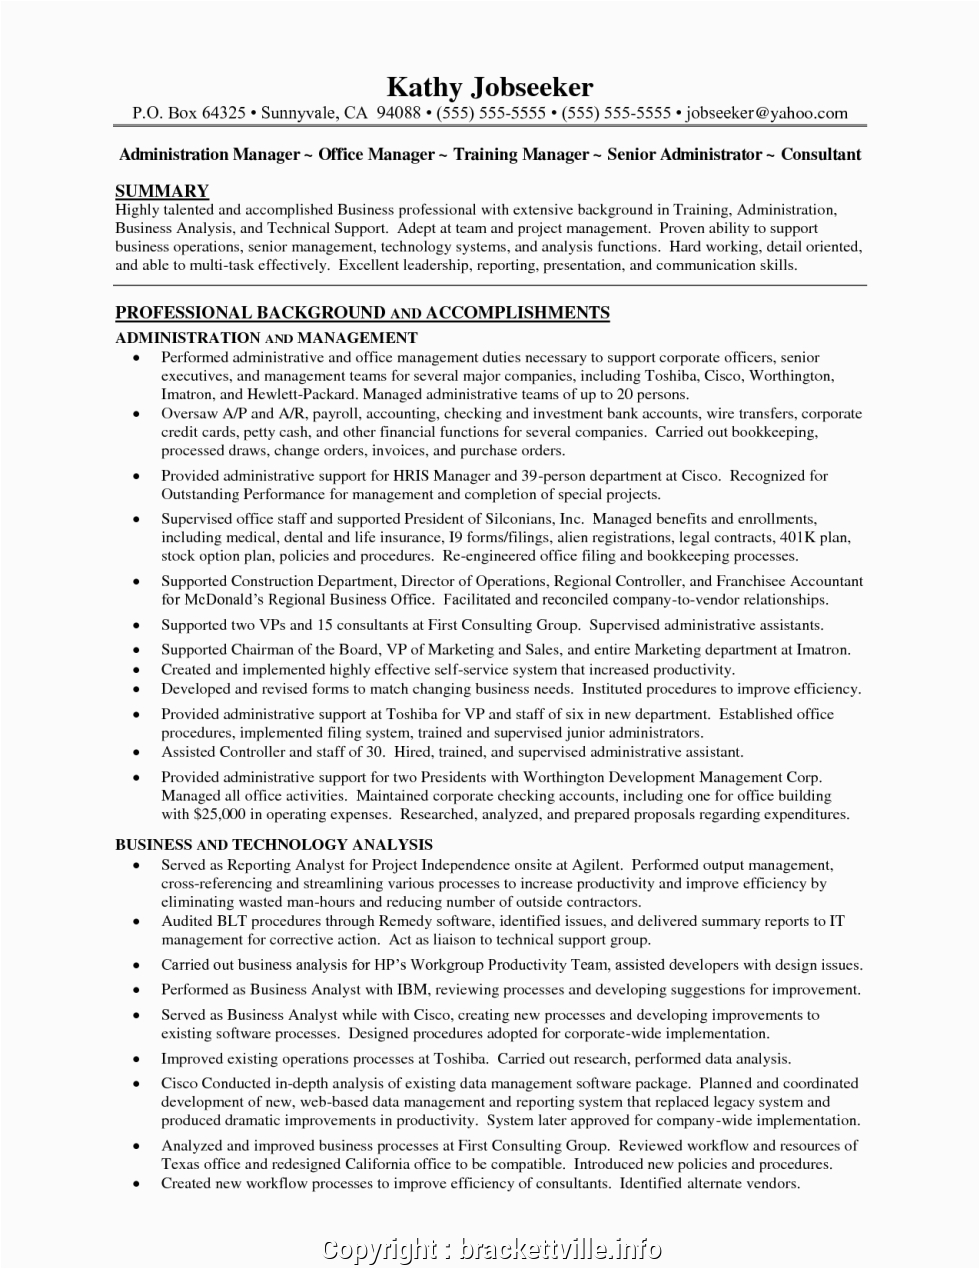 executive law firm office manager resume sample